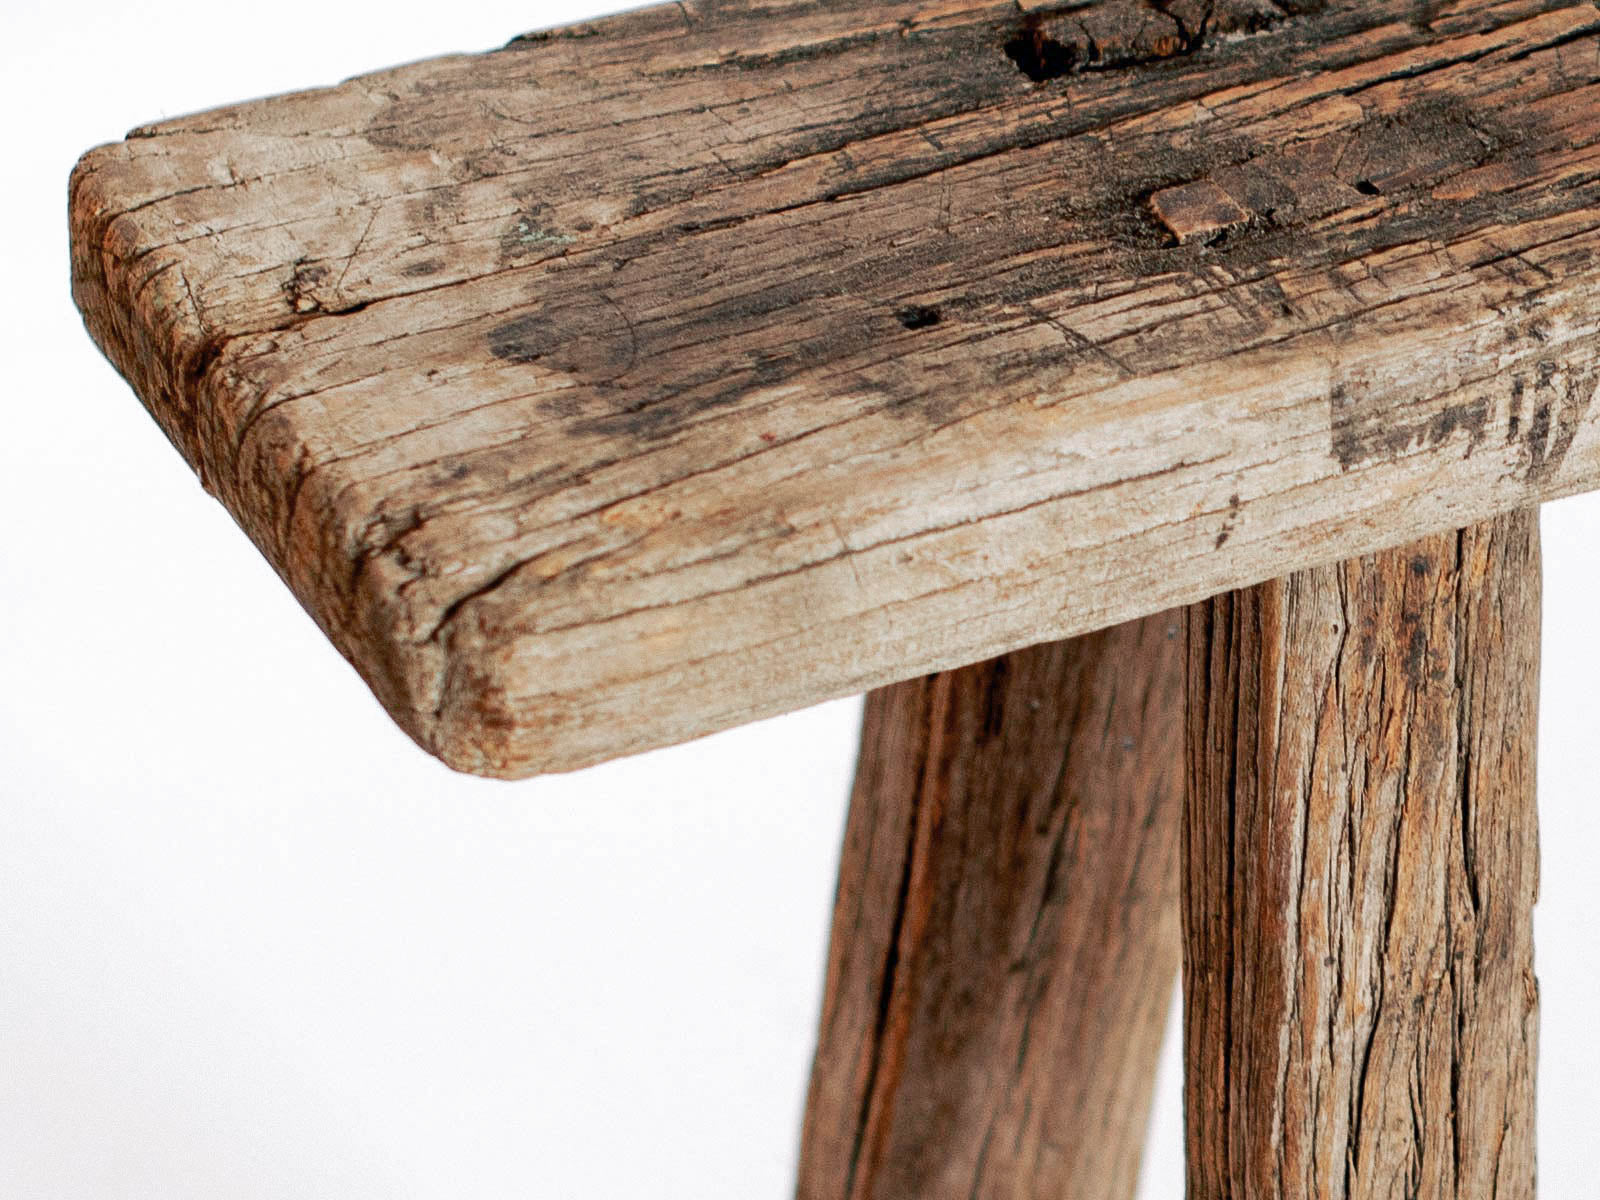 RUSTIC CHINESE ELM WOOD BENCH - Celestial - CELESTIAL - Sourced from artists in Europe, Asia and Africa, these limited edition pieces inspire a life of simplicity and style.